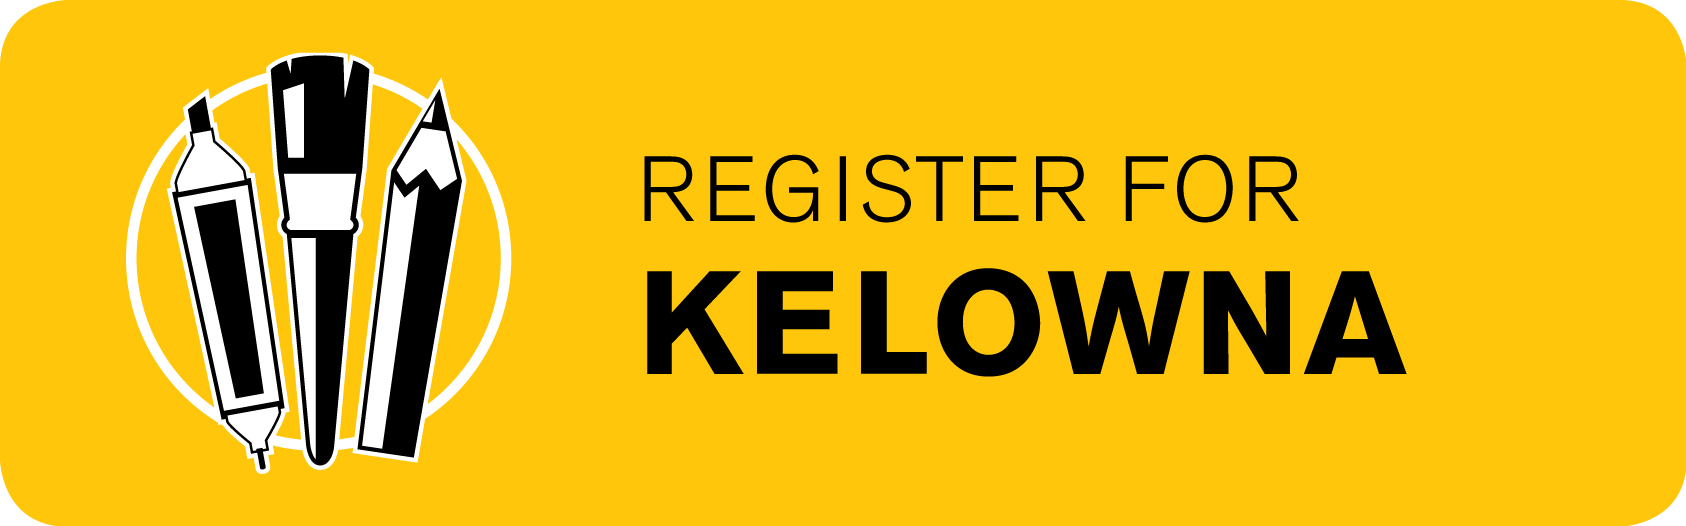 Register for Kelowna